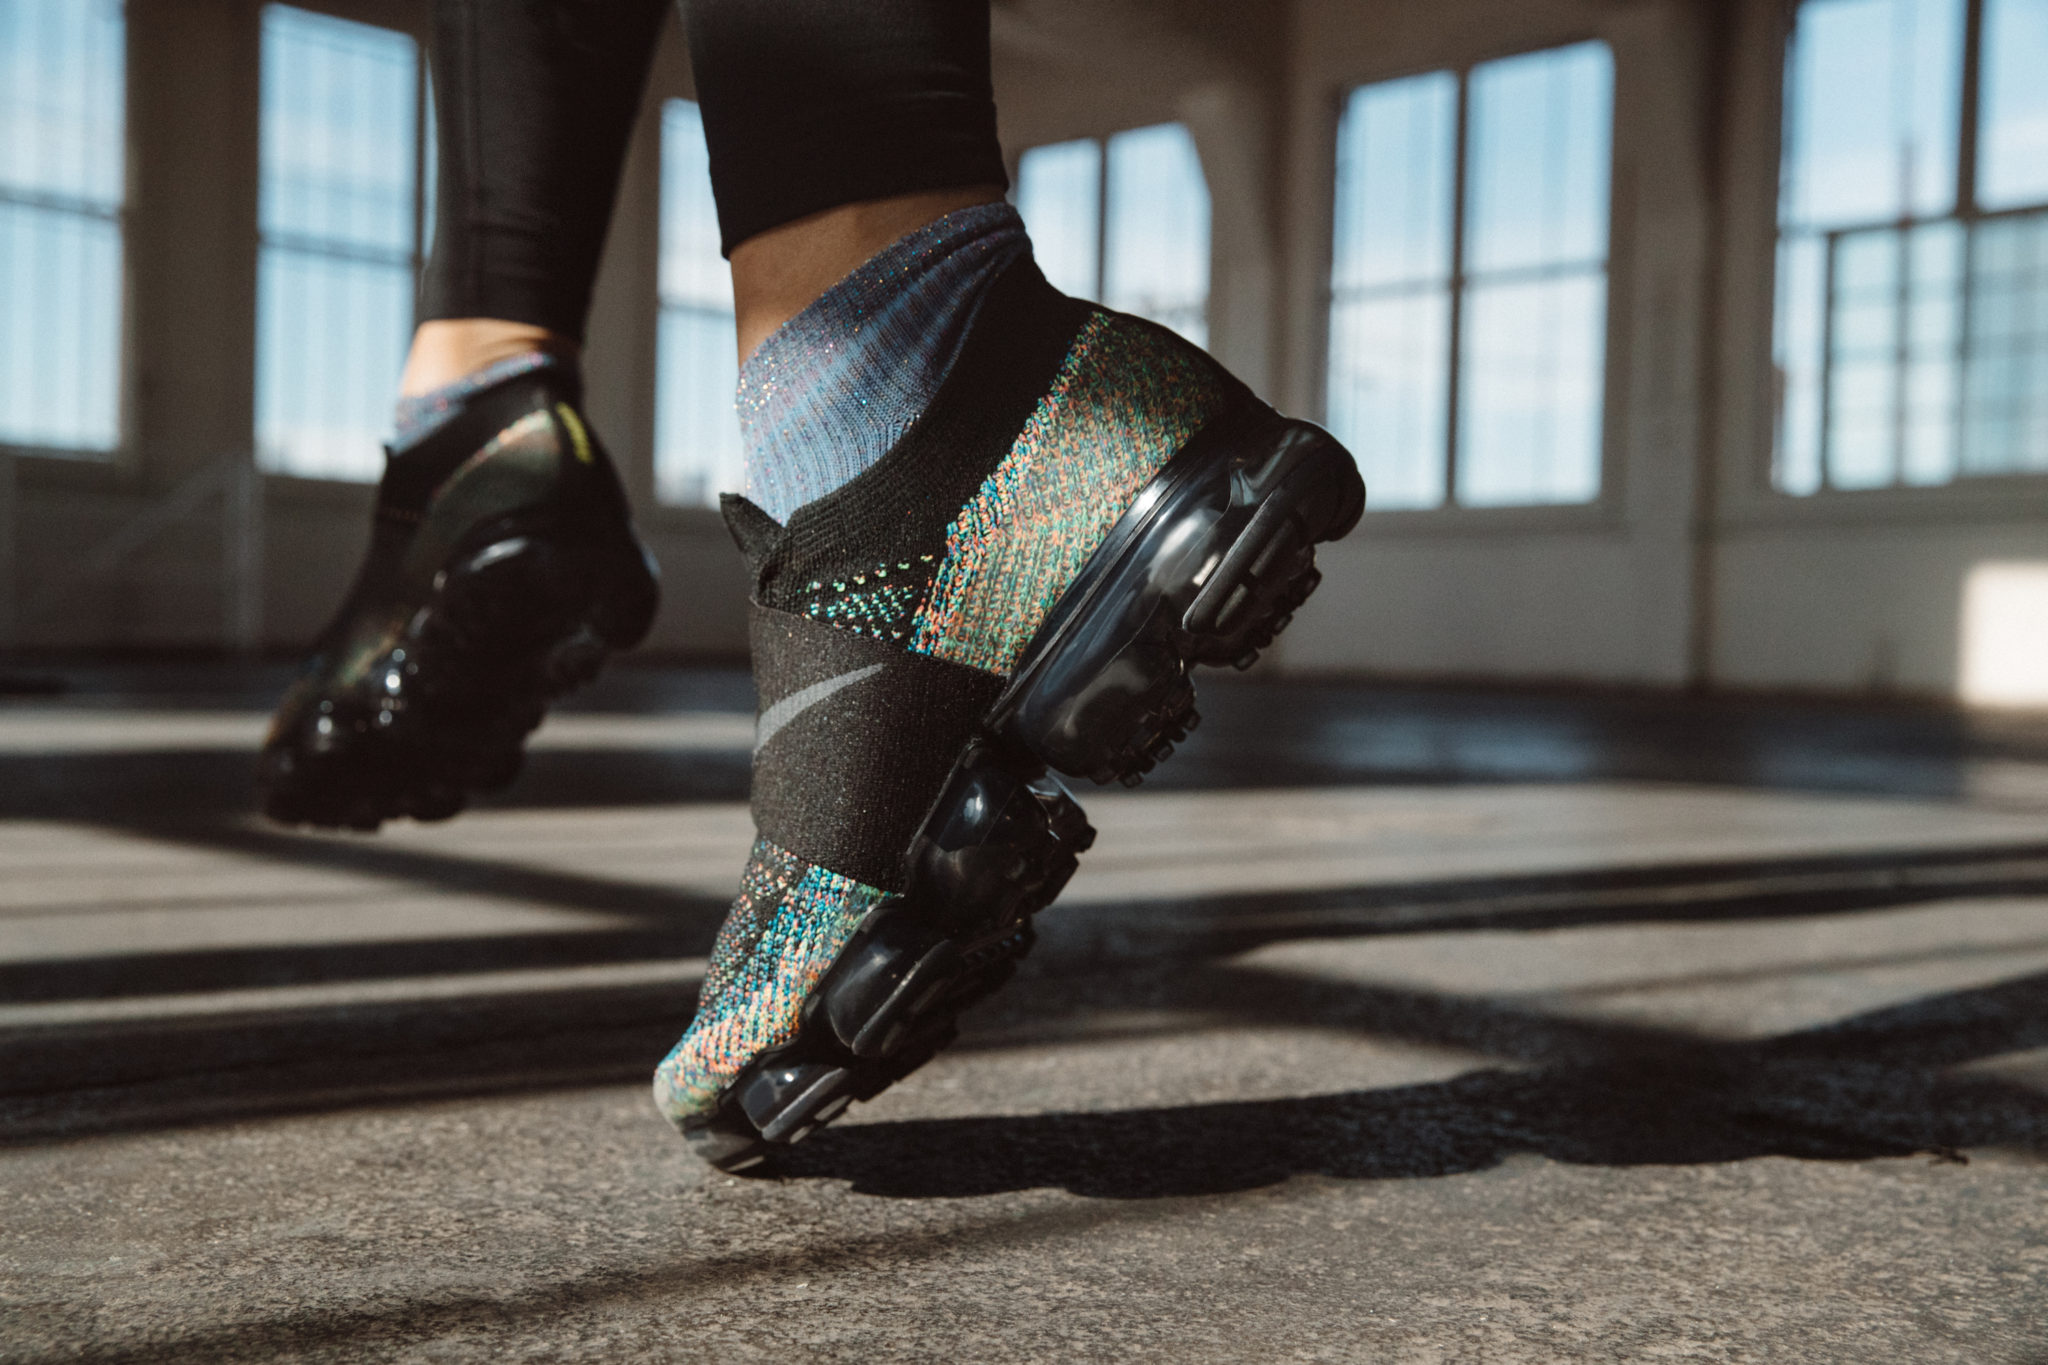 newest 34436 4a5ab Check out the Nike Air VaporMax MOC Flyknit worn by Megan Batoon. Now  available at finishline.com.